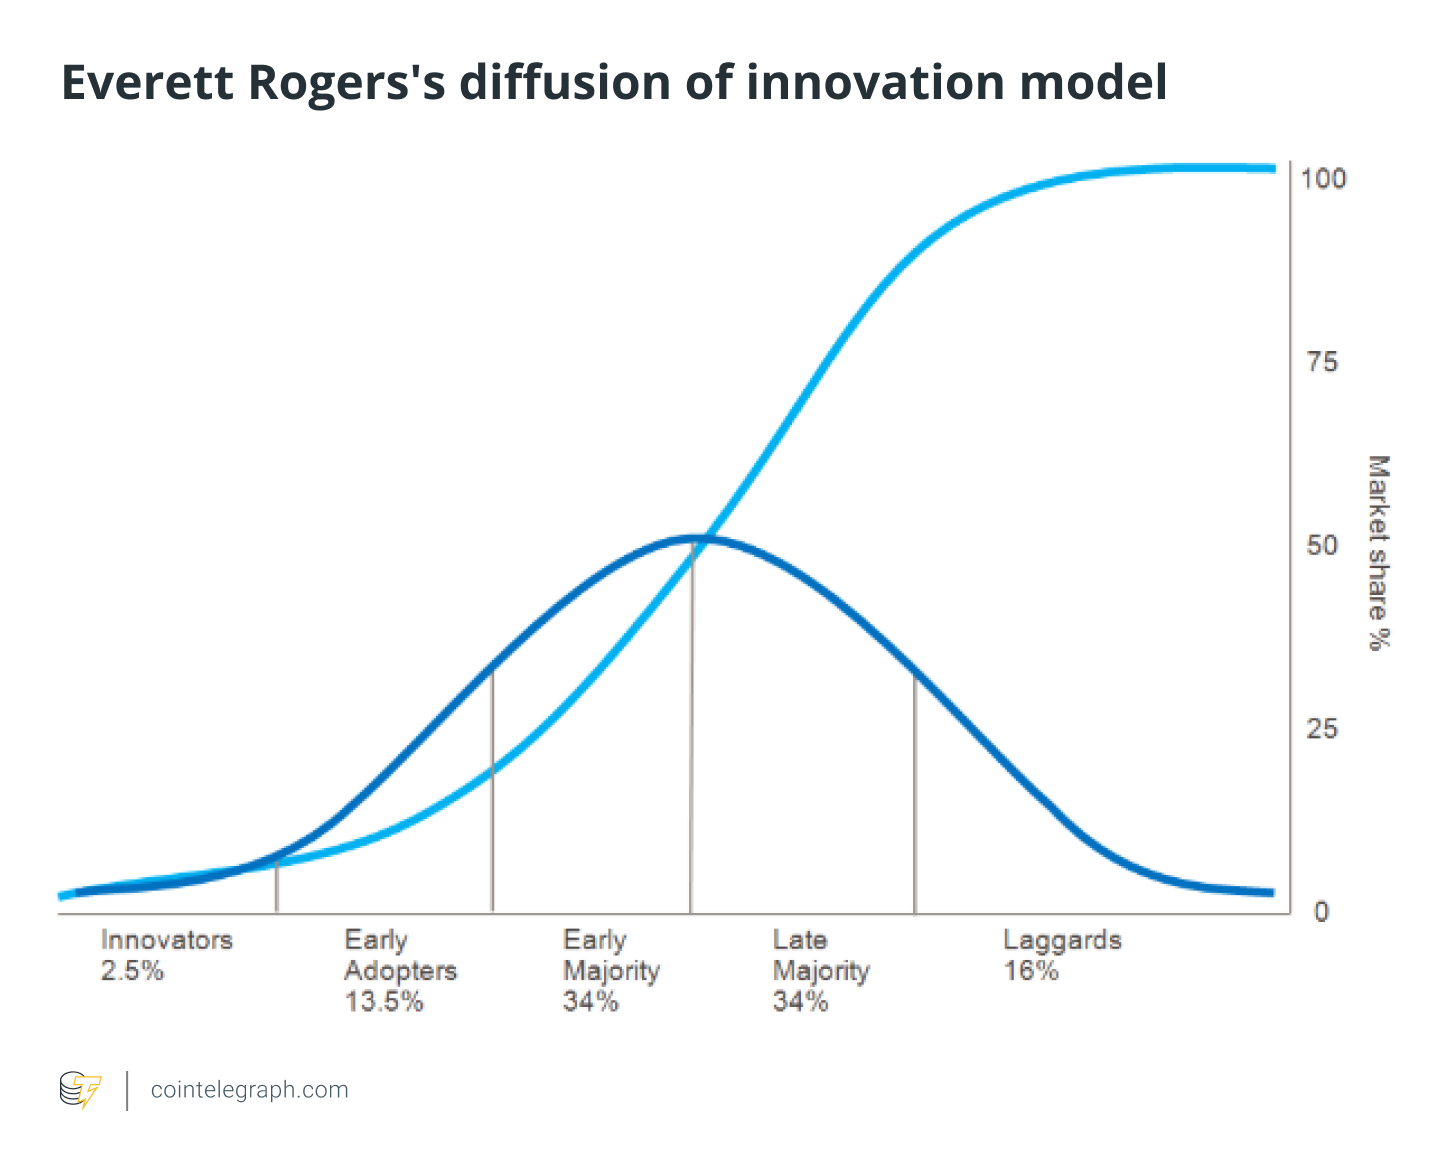 Everett Rogers's diffusion of innovation model